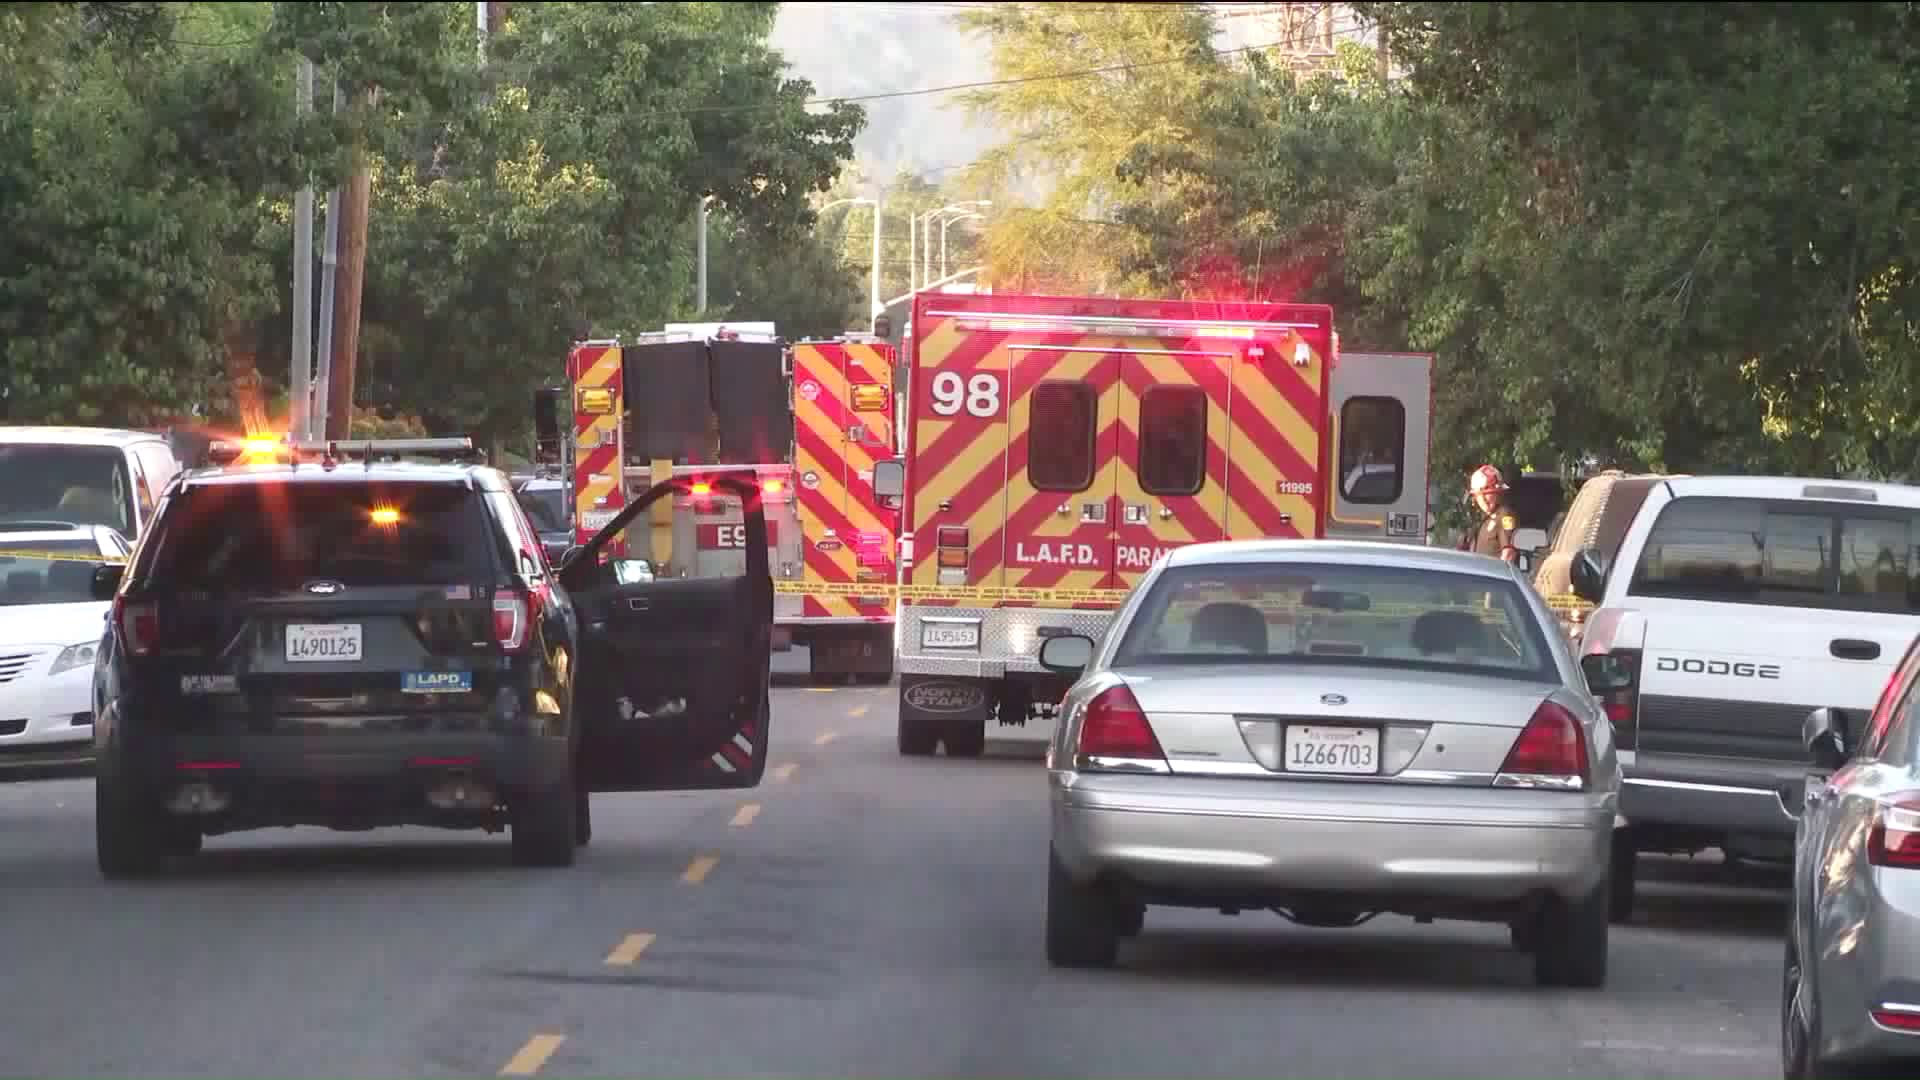 Police investigate the scene of a shooting that left two people wounded in Sylmar on June 7, 2019. (Credit: KTLA)